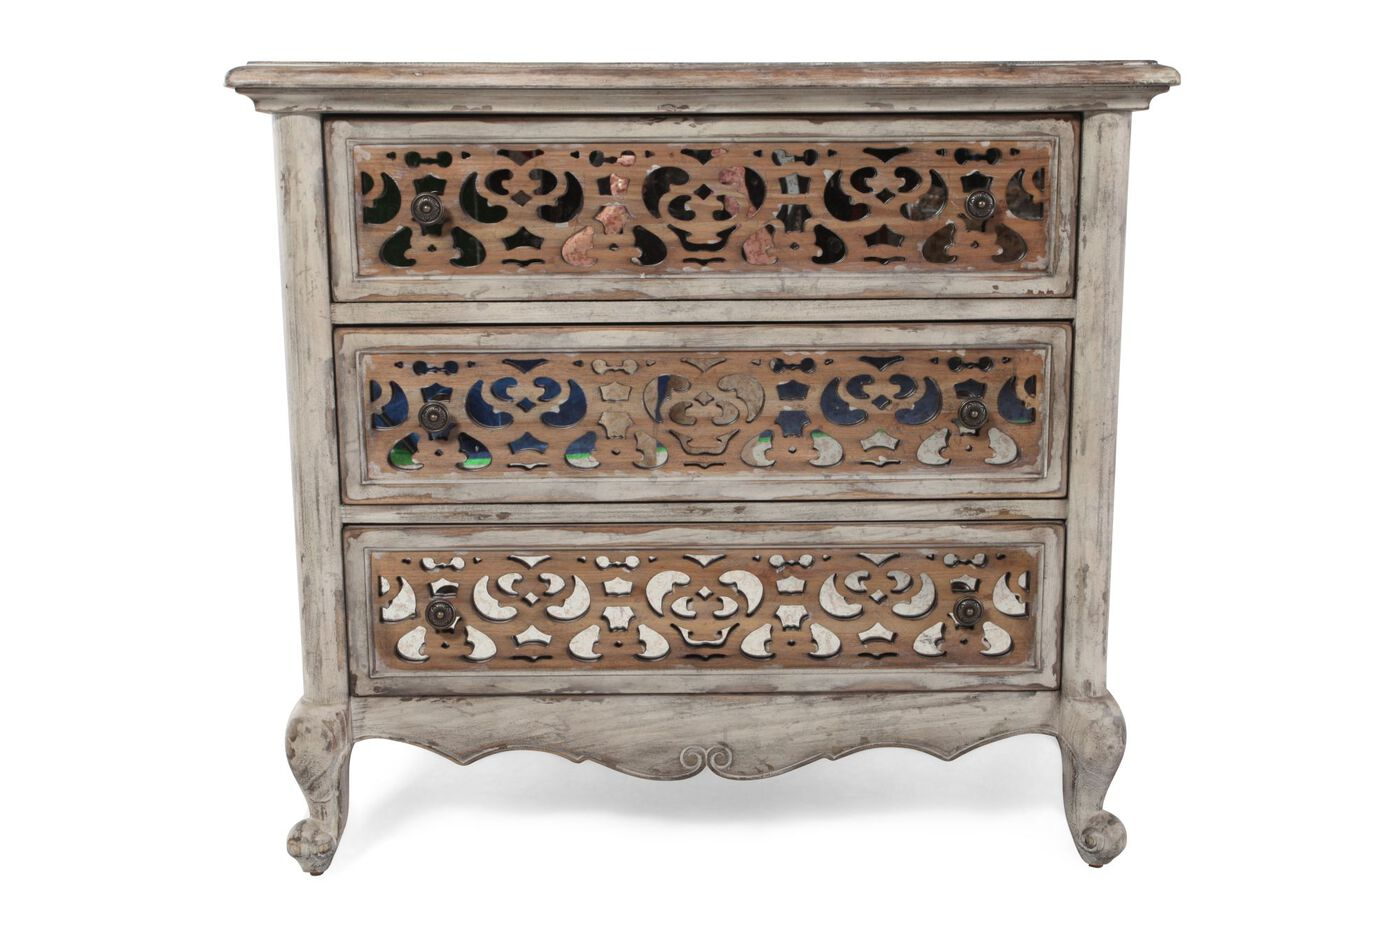 fretwork furniture. Images 33\u0026quot; Contemporary Solid Wood Three-Drawer Fretwork Nightstand\u0026nbsp;in Light Brown Furniture O